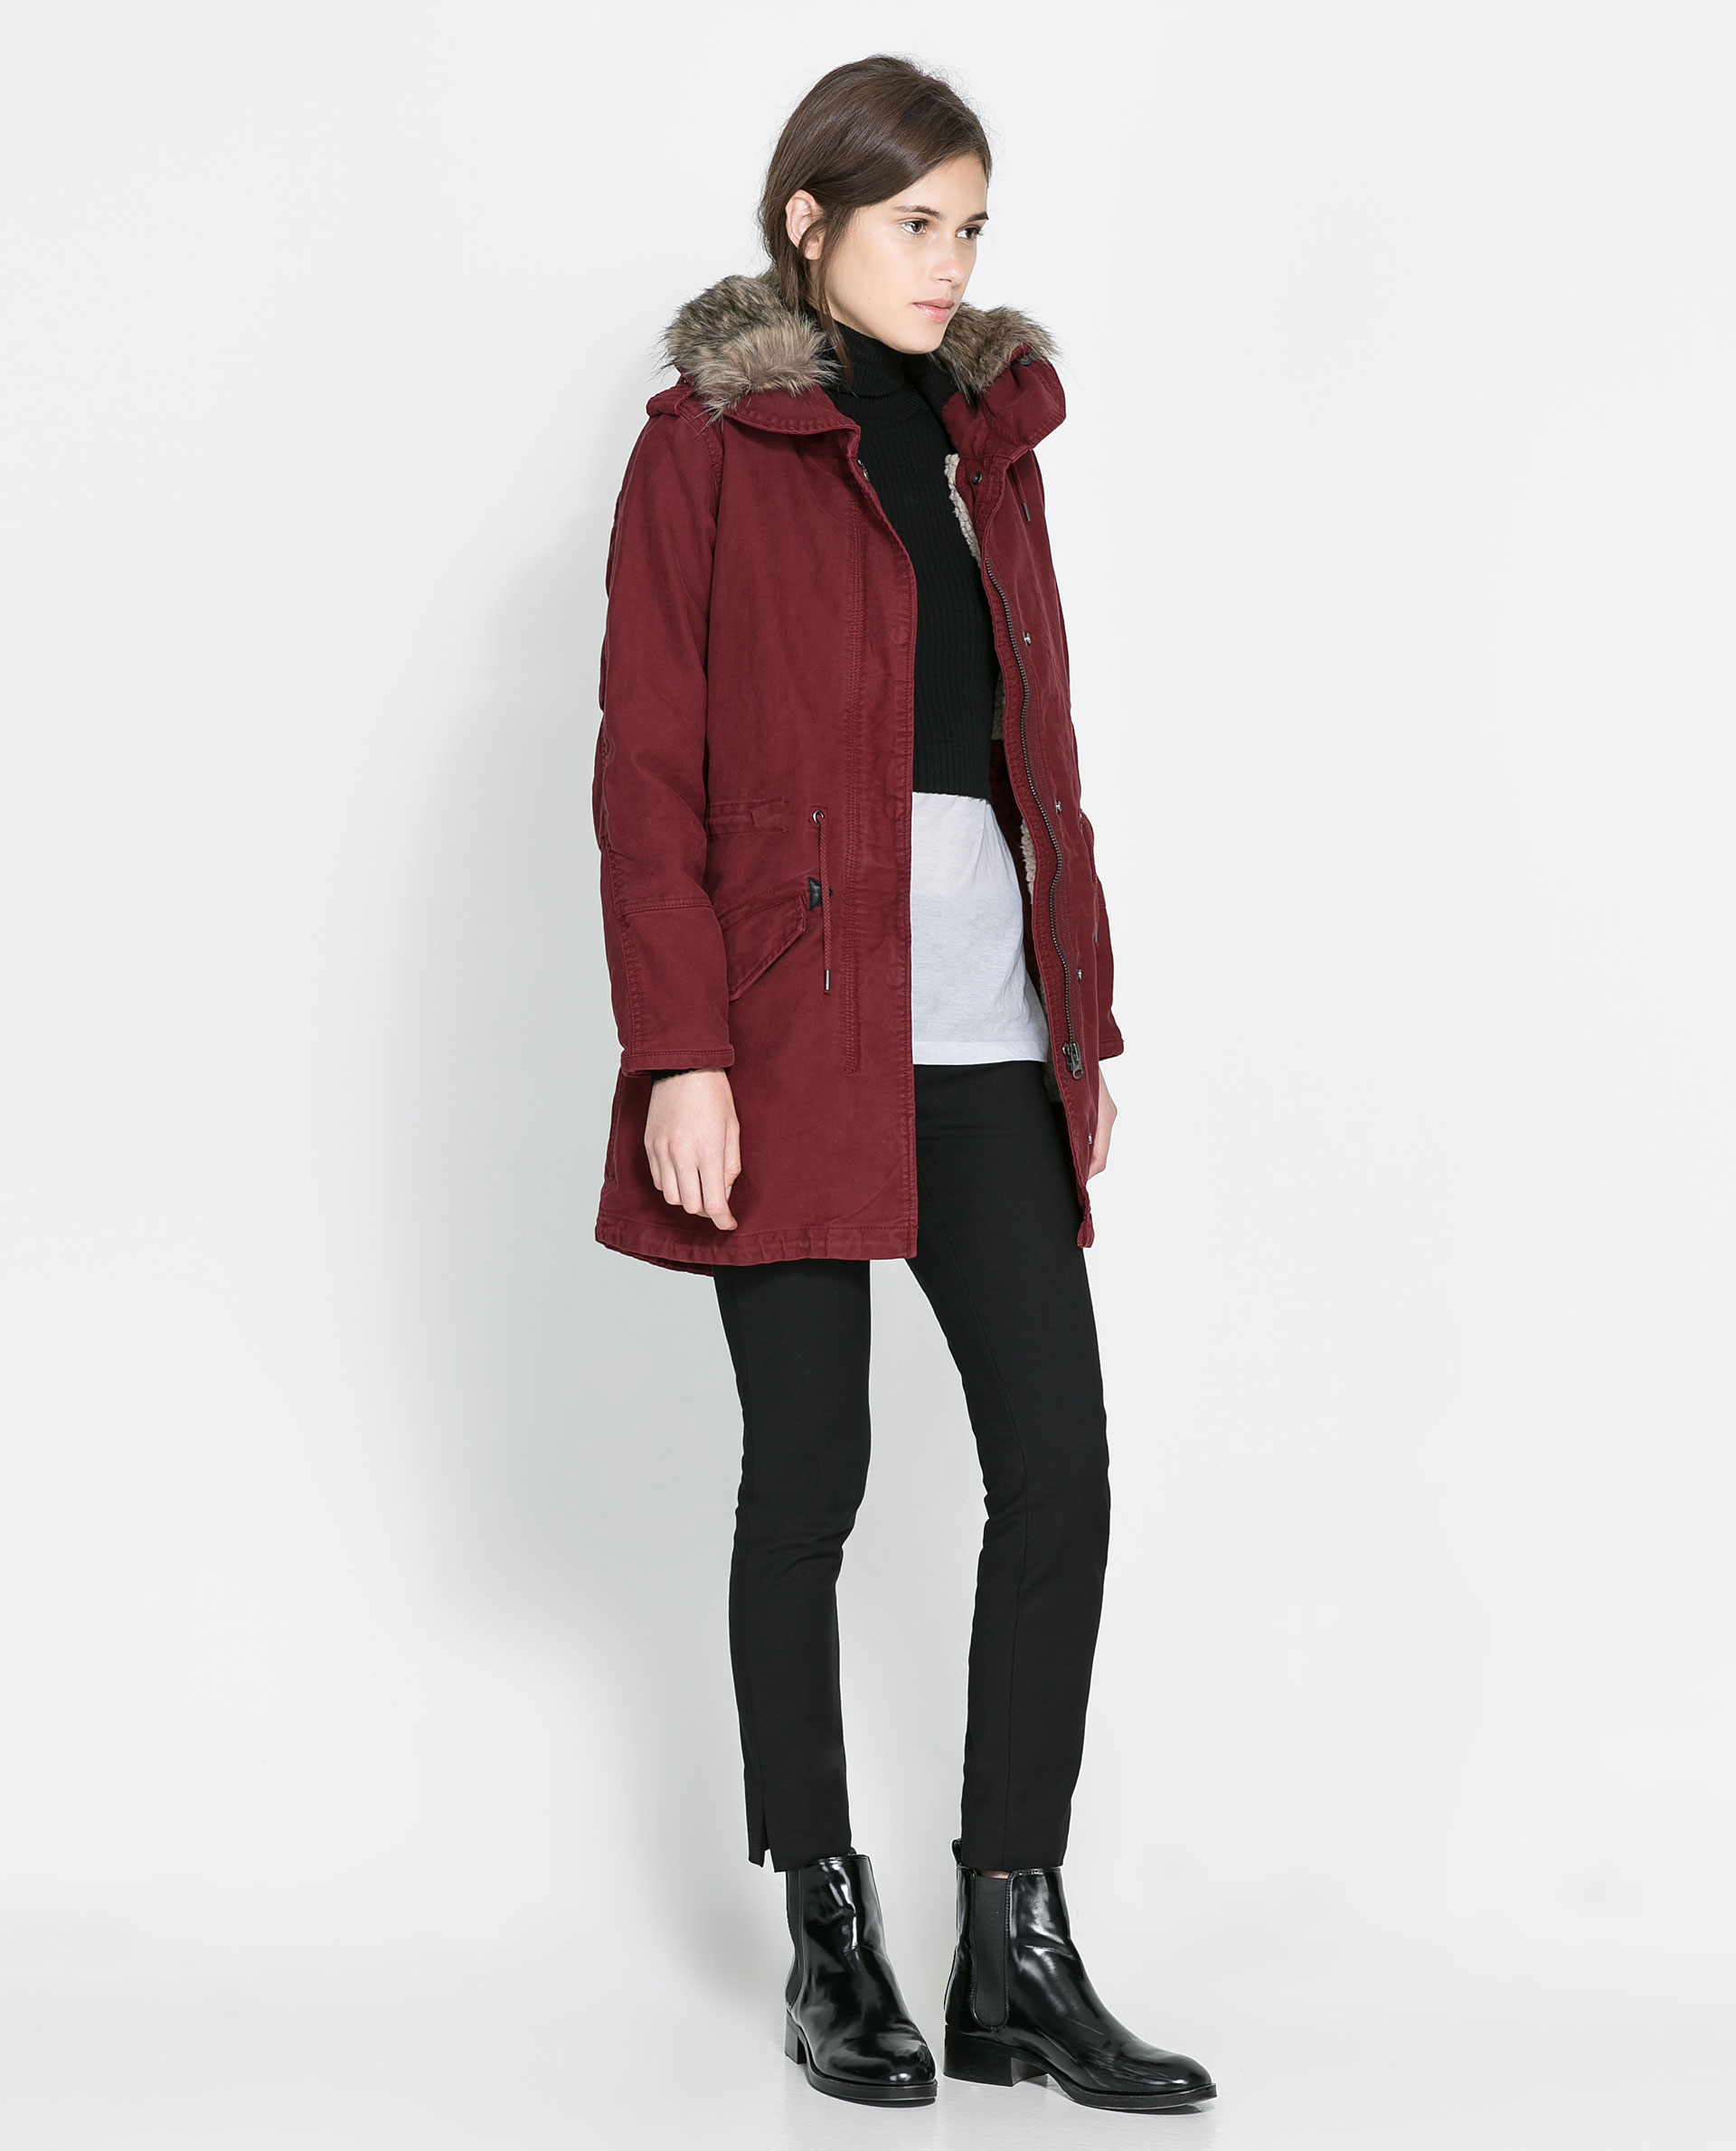 Women's winter parka zara – Modern fashion jacket photo blog